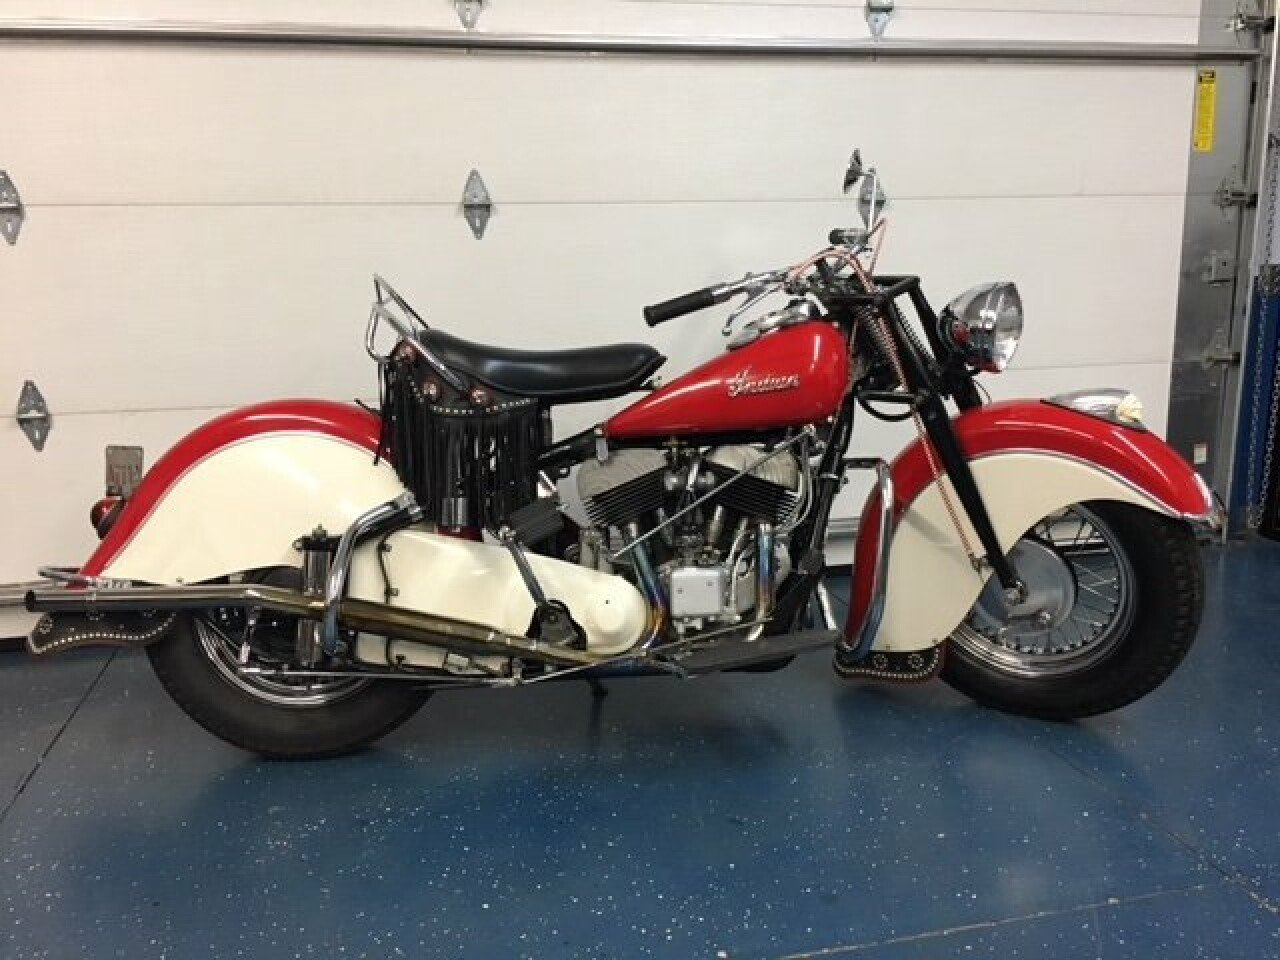 Indian Chief Motorcycle: 1947 Indian Chief For Sale Near Riverhead, New York 11901